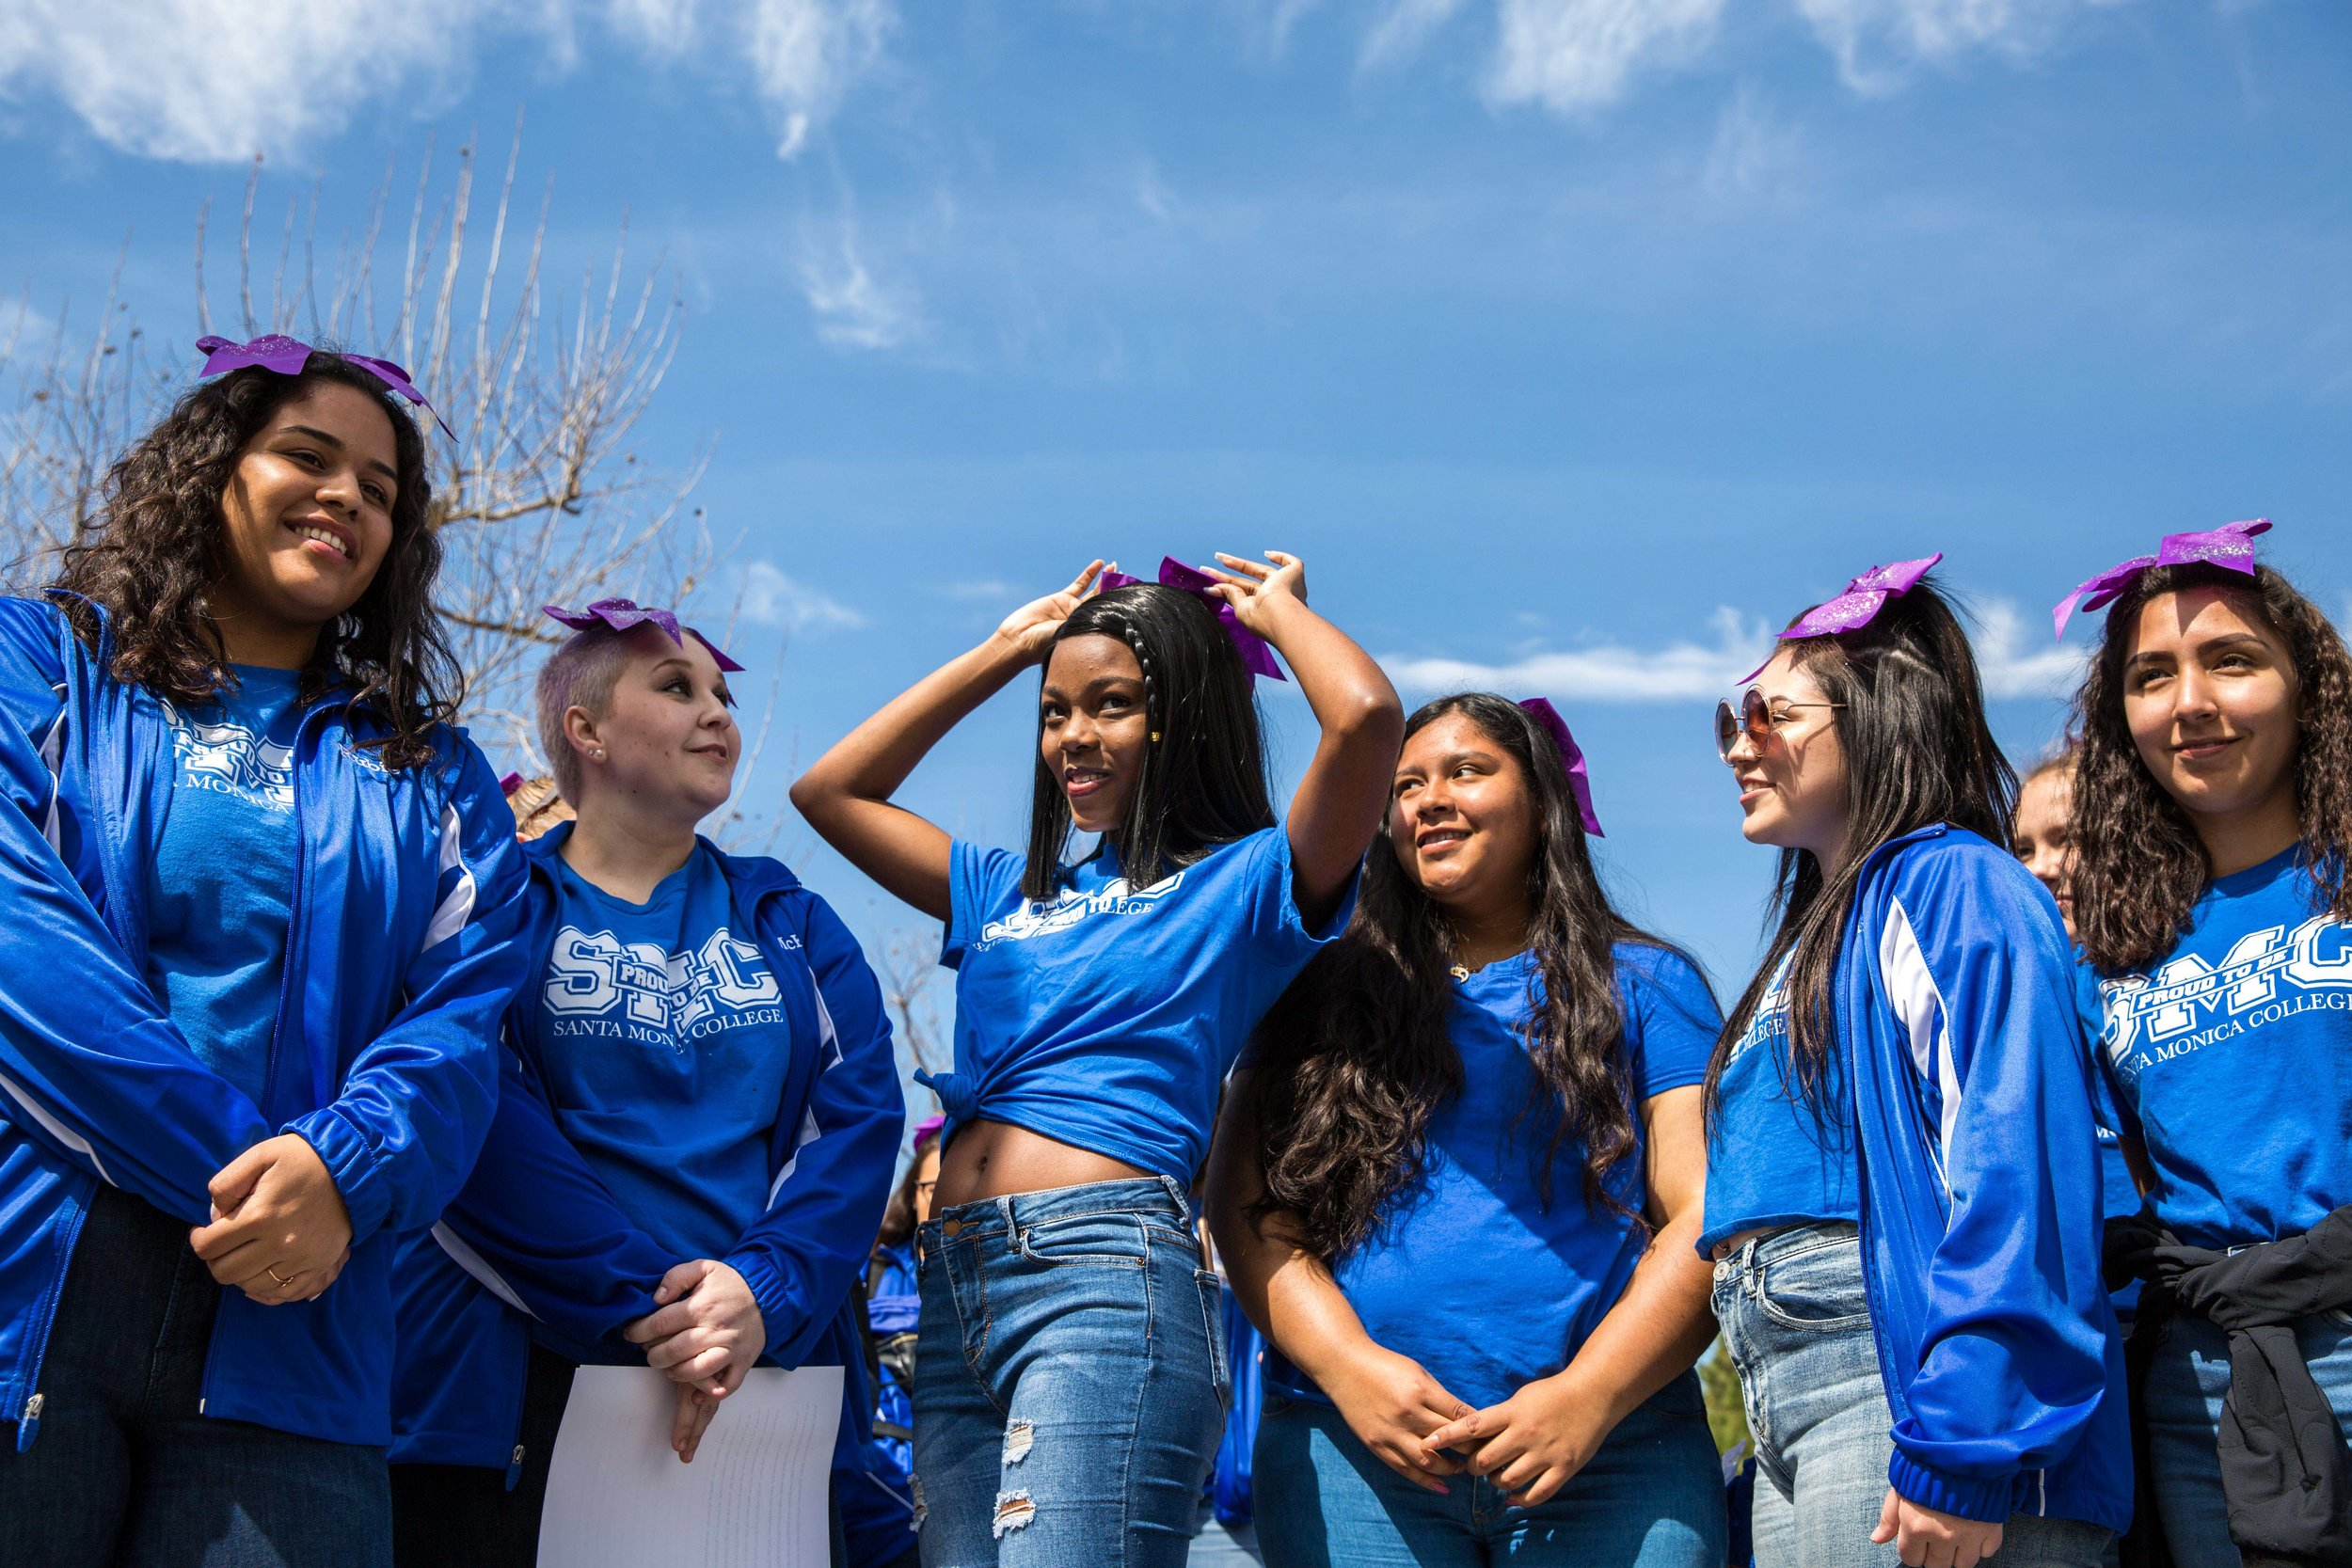 Members of the Santa Monica College cheer squad put on their purple bows with pride during the Santa Monica College International Women's Day event that took place on the SMC main campus, in front of the Library Walkway, in Santa Monica California on Thursday, March 8, 2018. Internationally, the color purple that the women are wearing signifies dignity and justice and is a color that is universal in representing all women. (Corsair Photo: Matthew Martin)